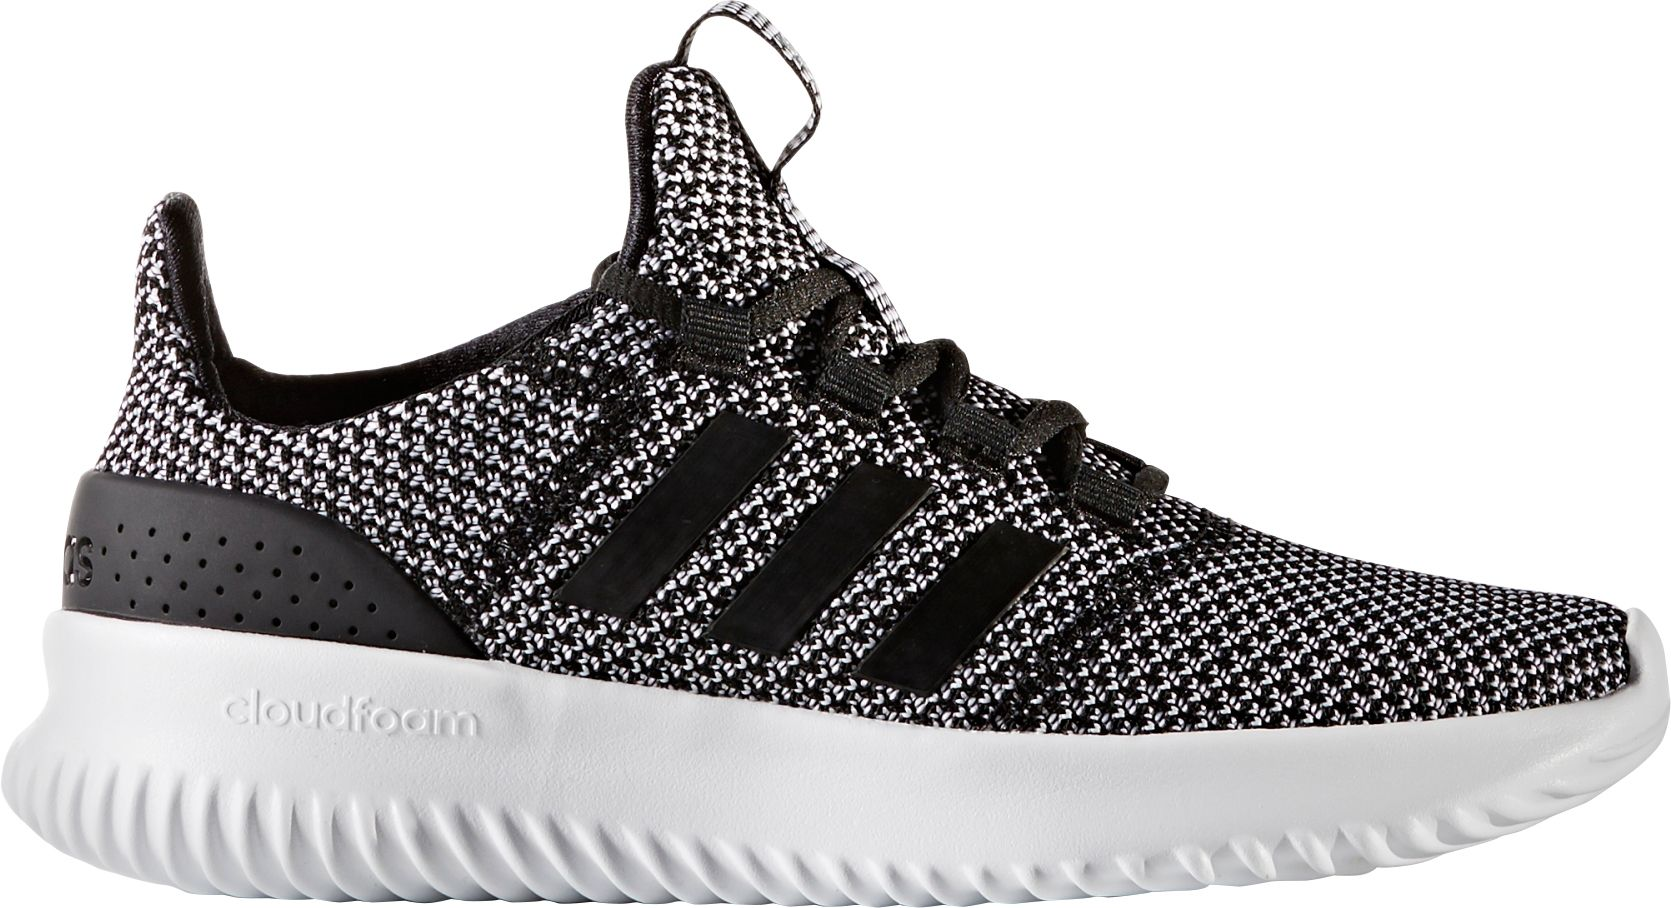 adidas Neo Kids' Preschool Cloudfoam Ultimate Shoes | DICK'S Sporting Goods